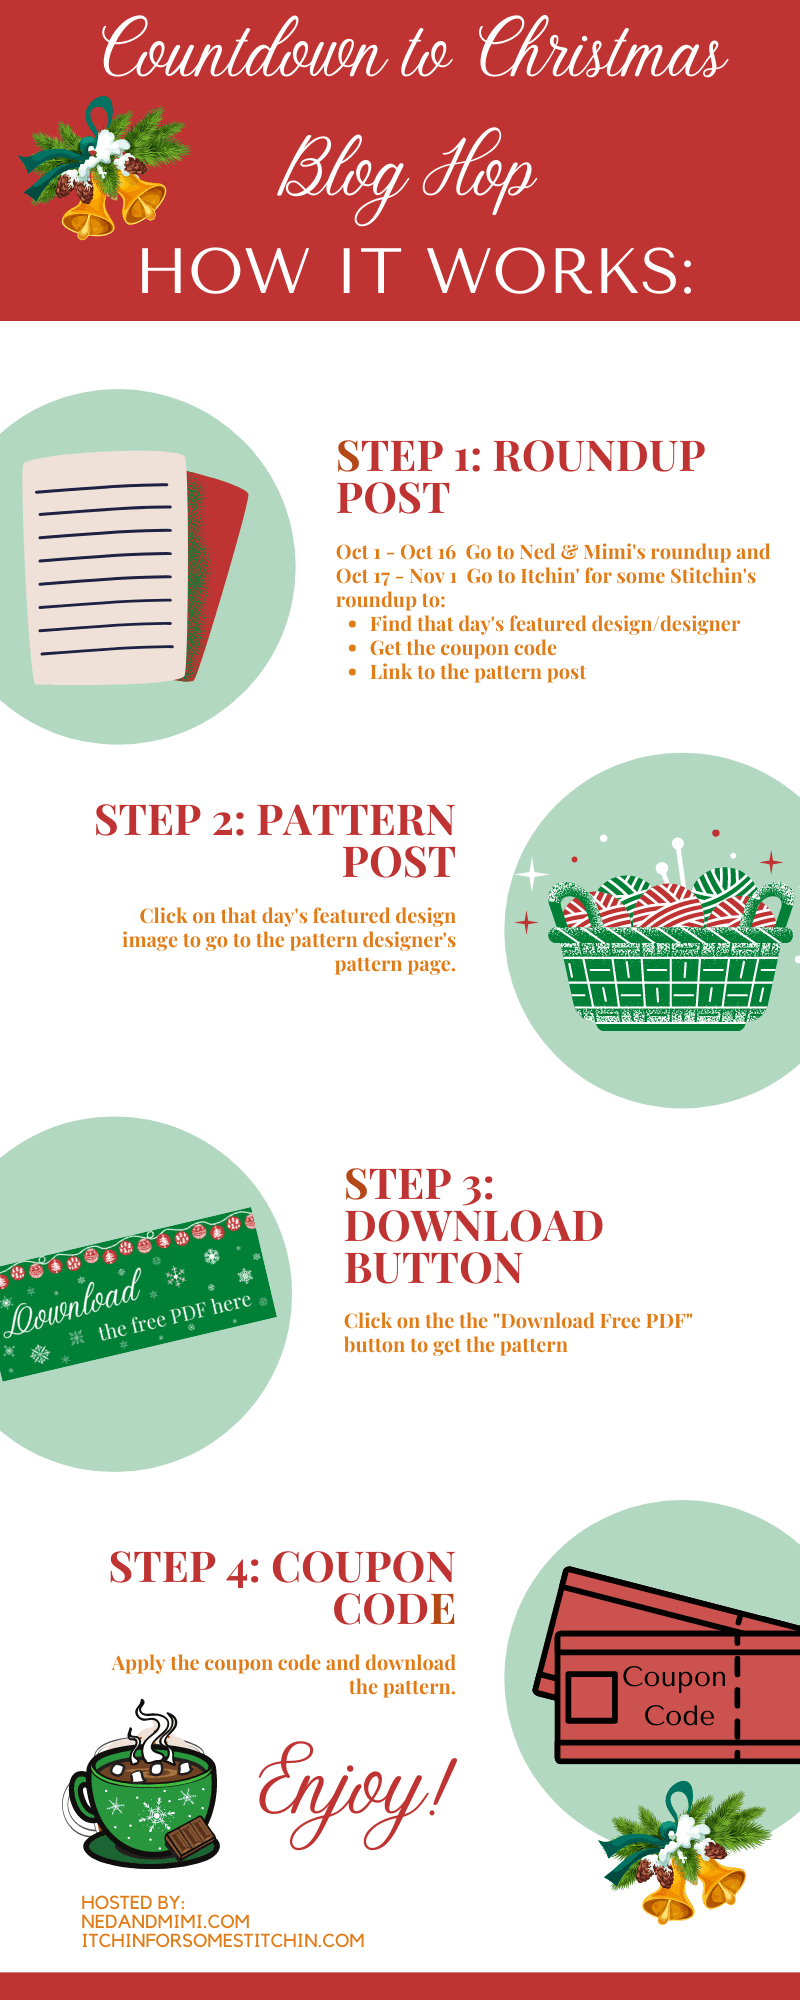 Find bunches of perfect Christmas crochet projects with this fun blog hop!